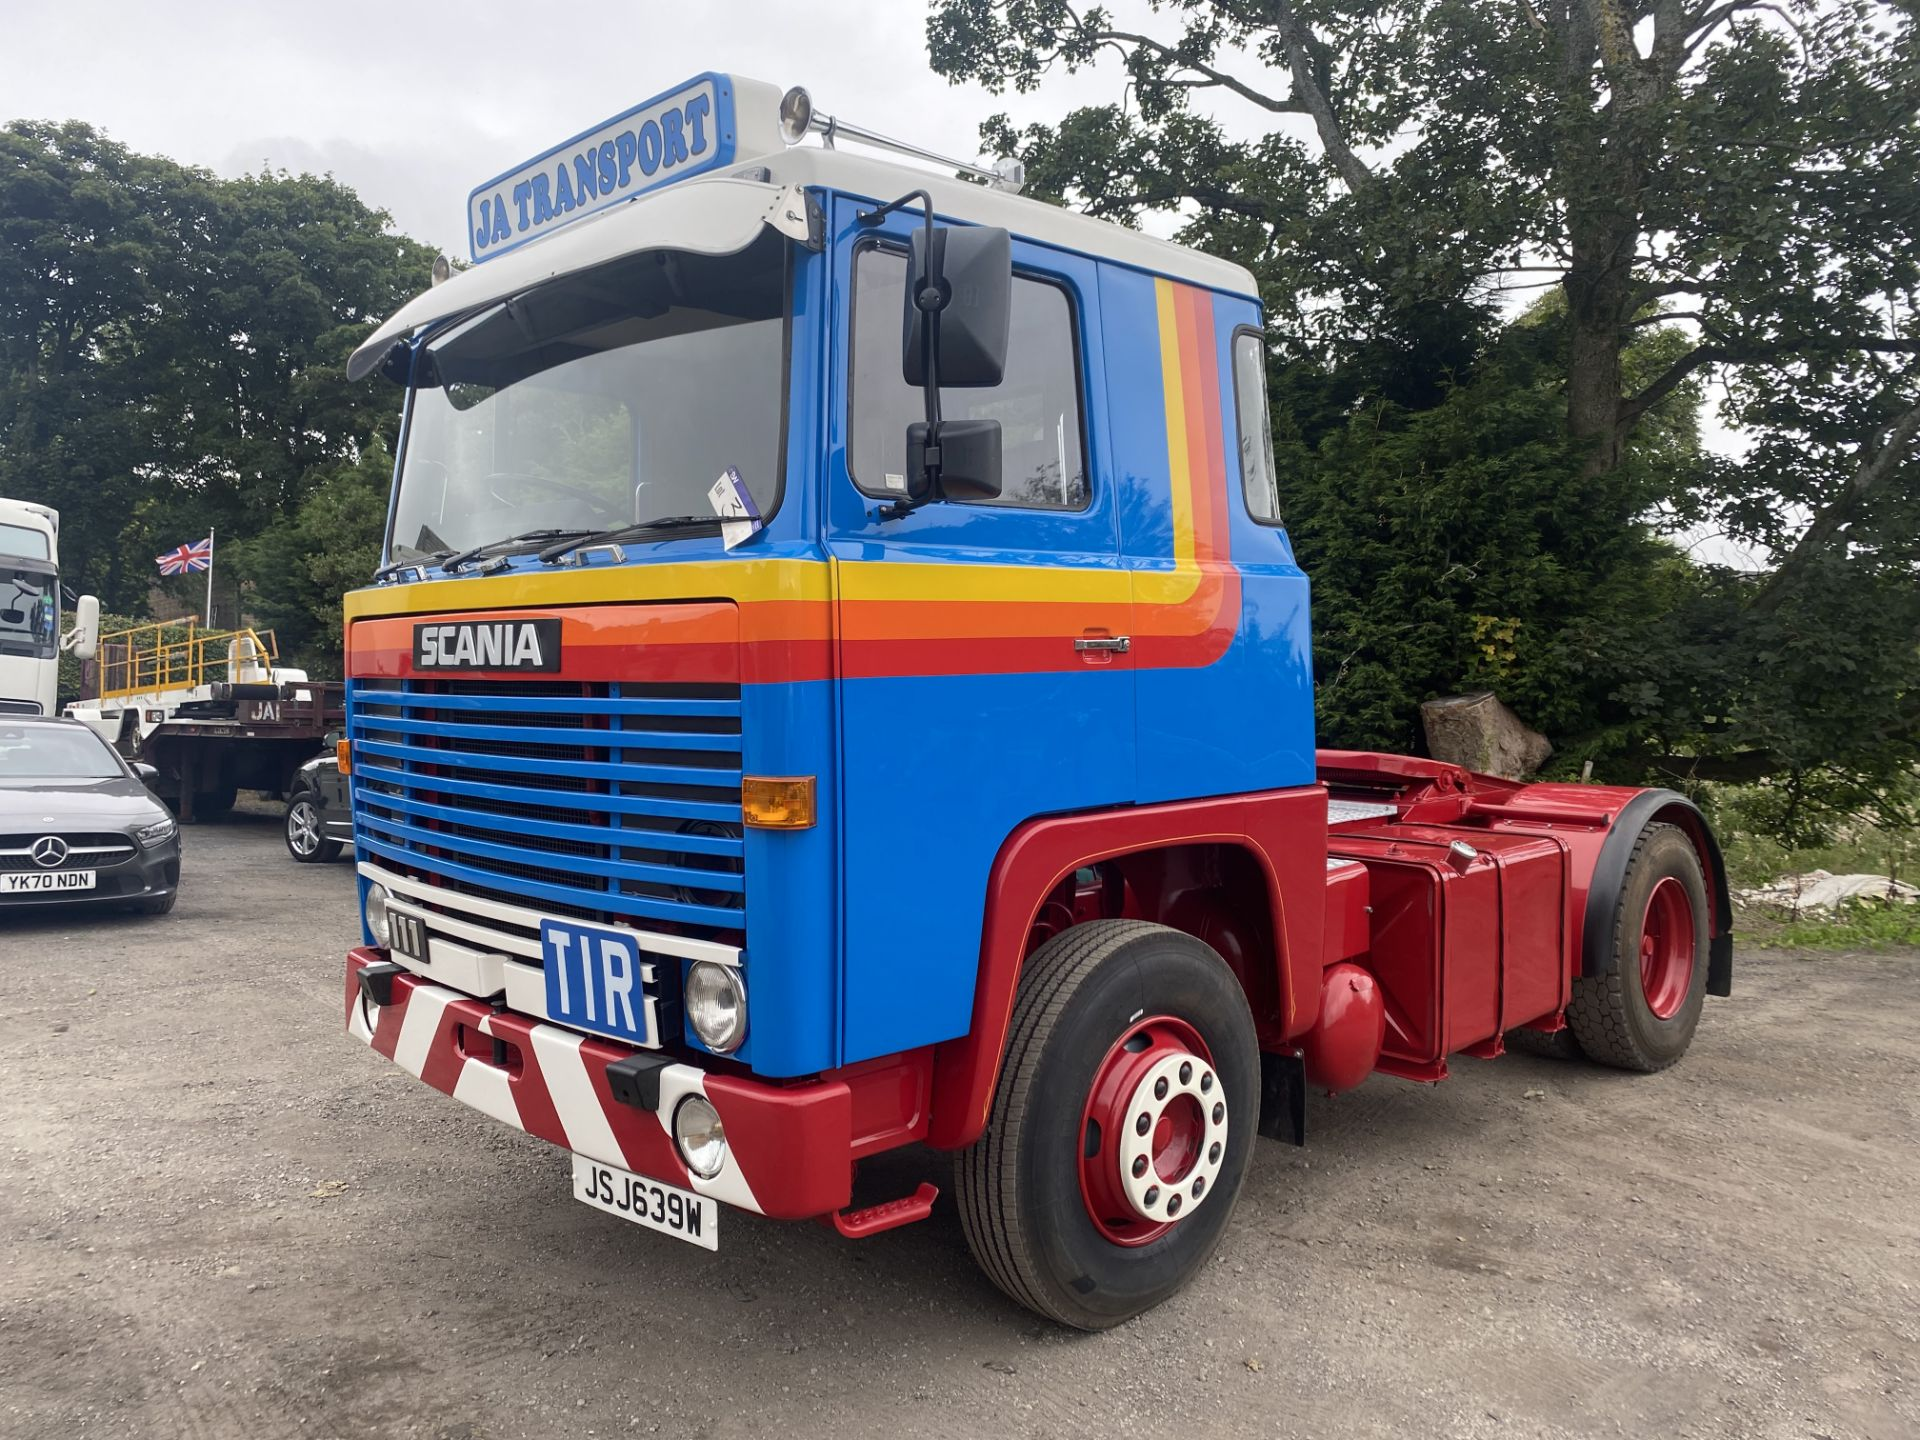 Scania 111 4X2 TRACTOR UNIT, registration no. JSJ 639W, date first registered 01/09/1980, fully